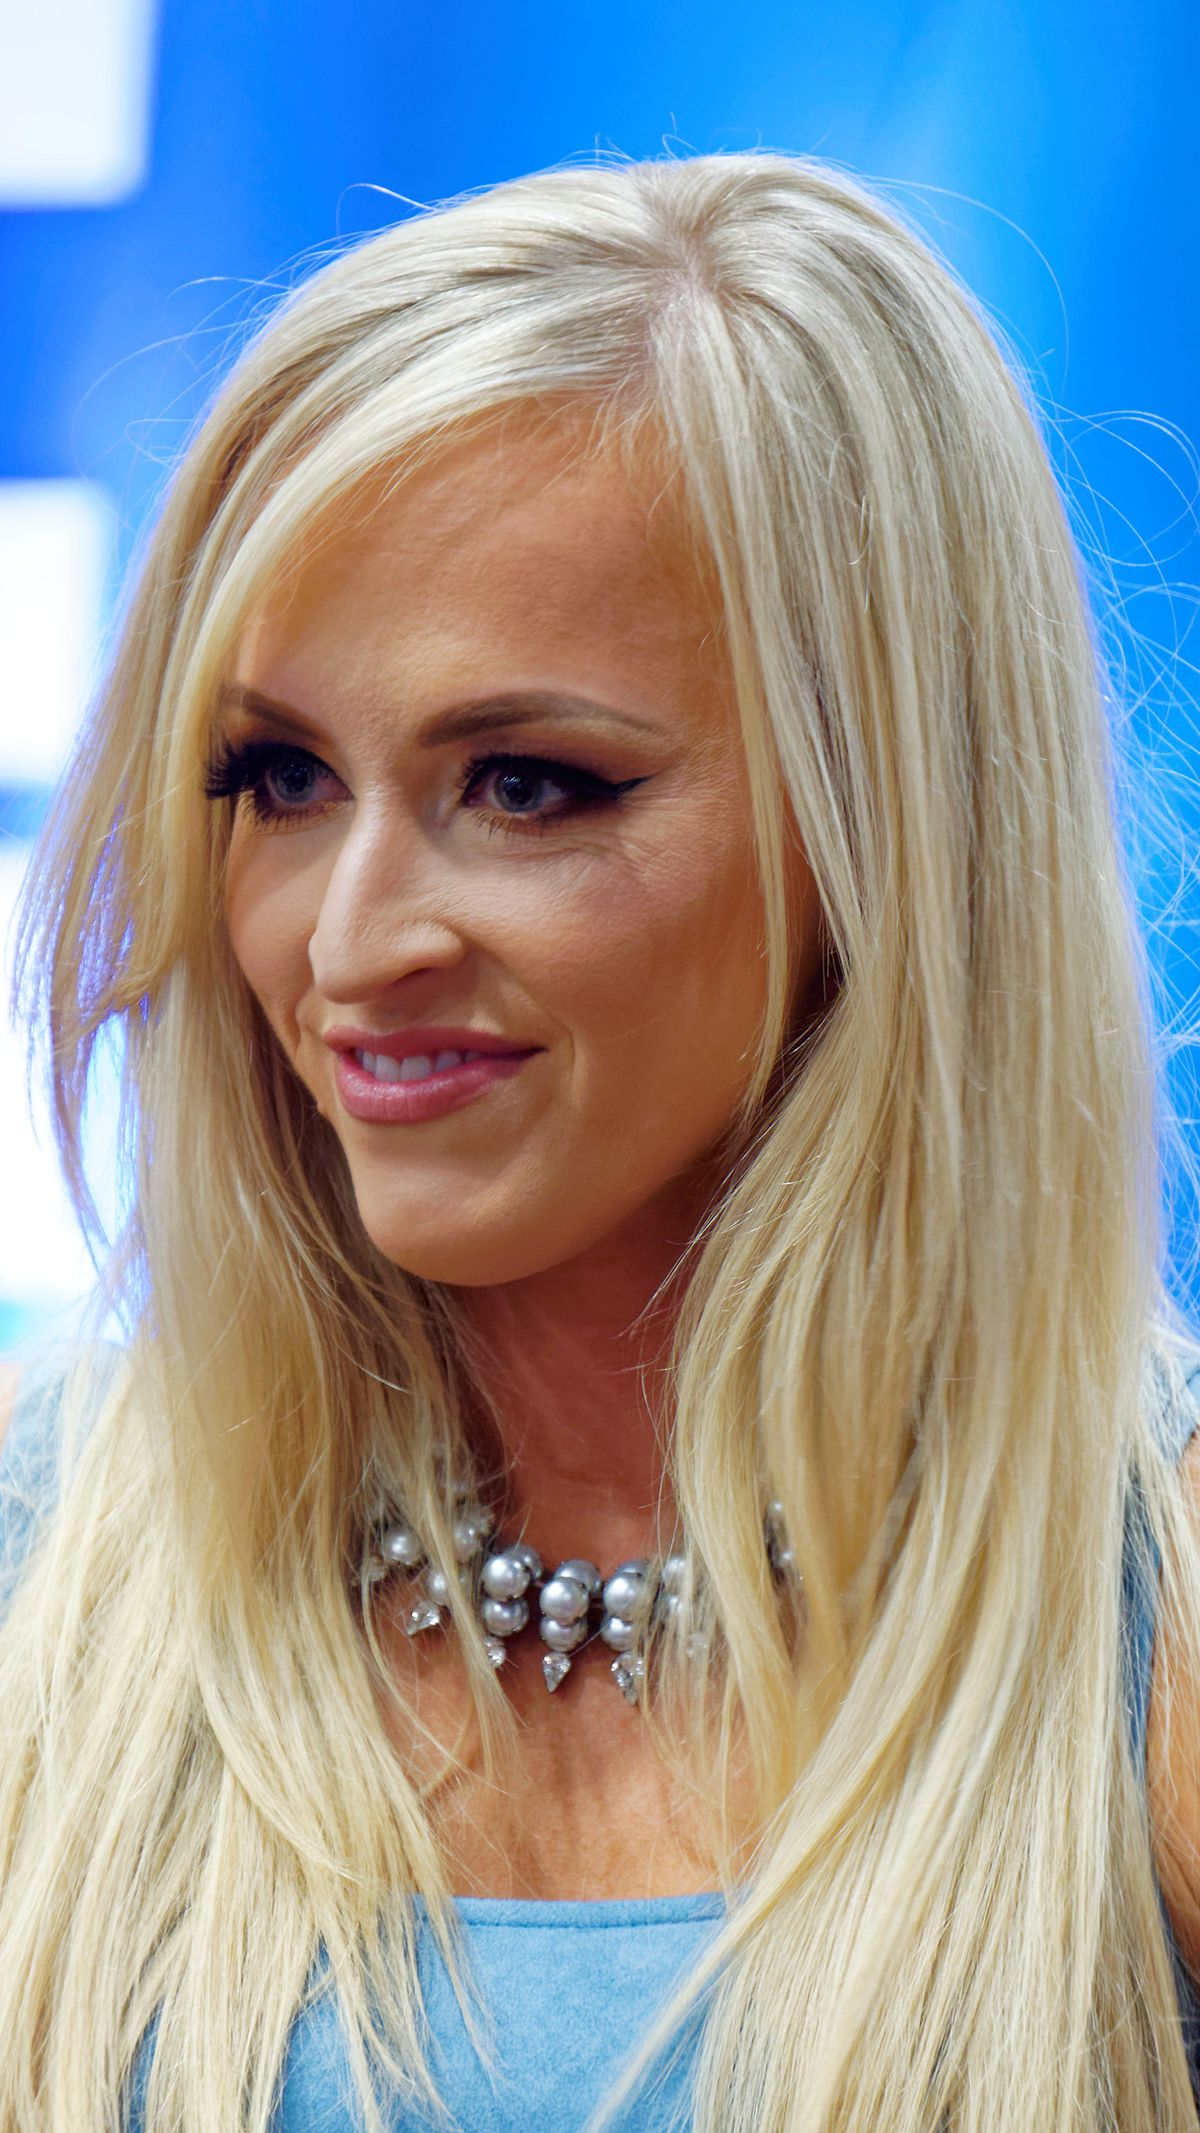 summer rae wikipedia